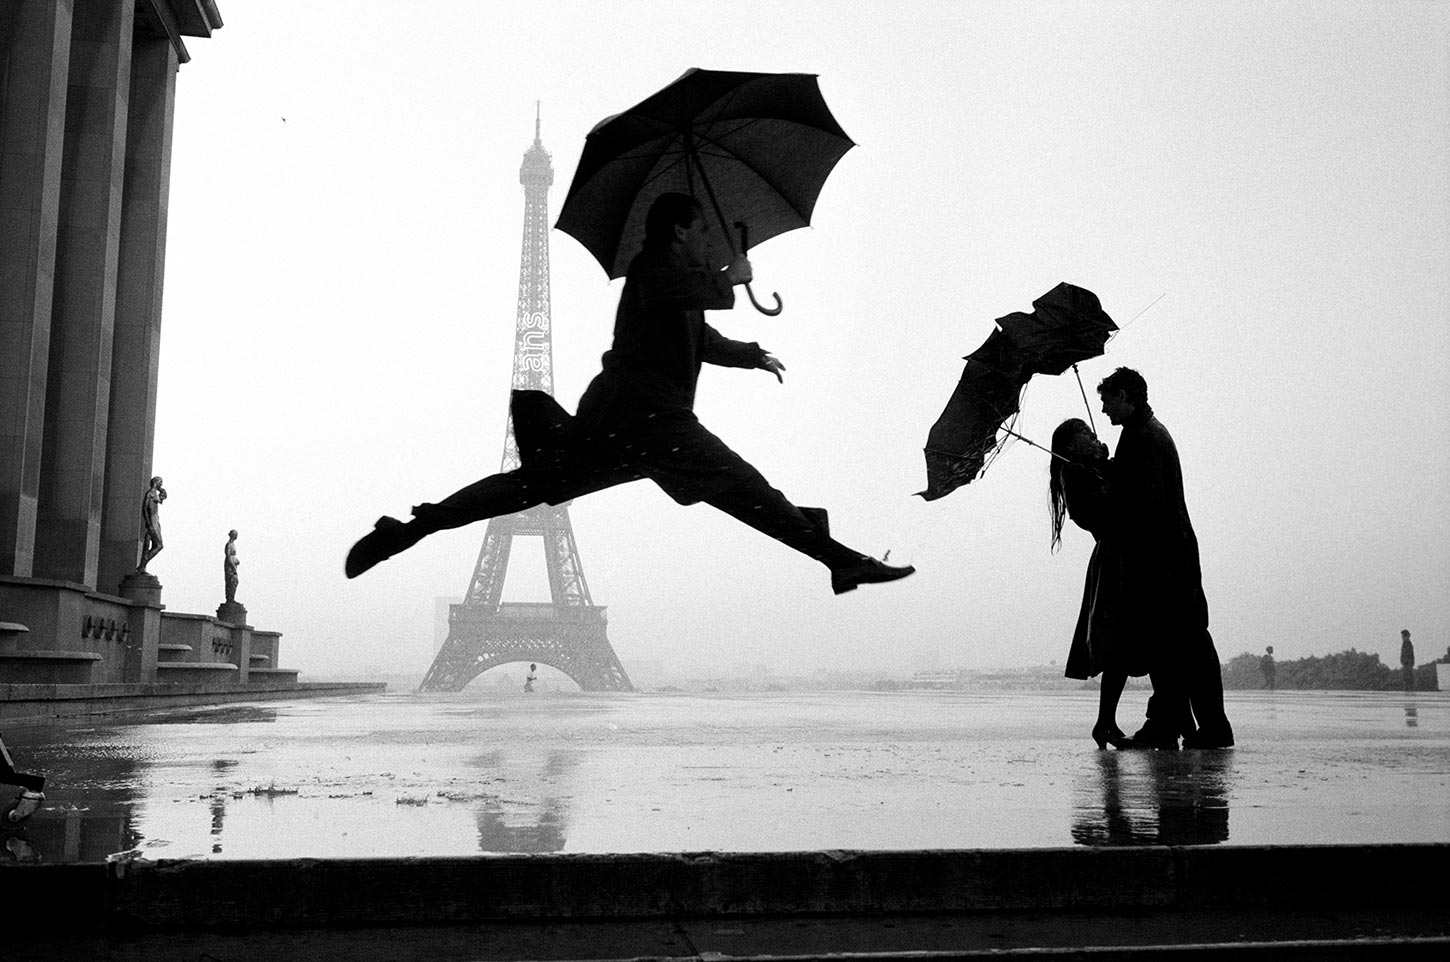 13. France. Paris. 1989. (Umbrella jump)